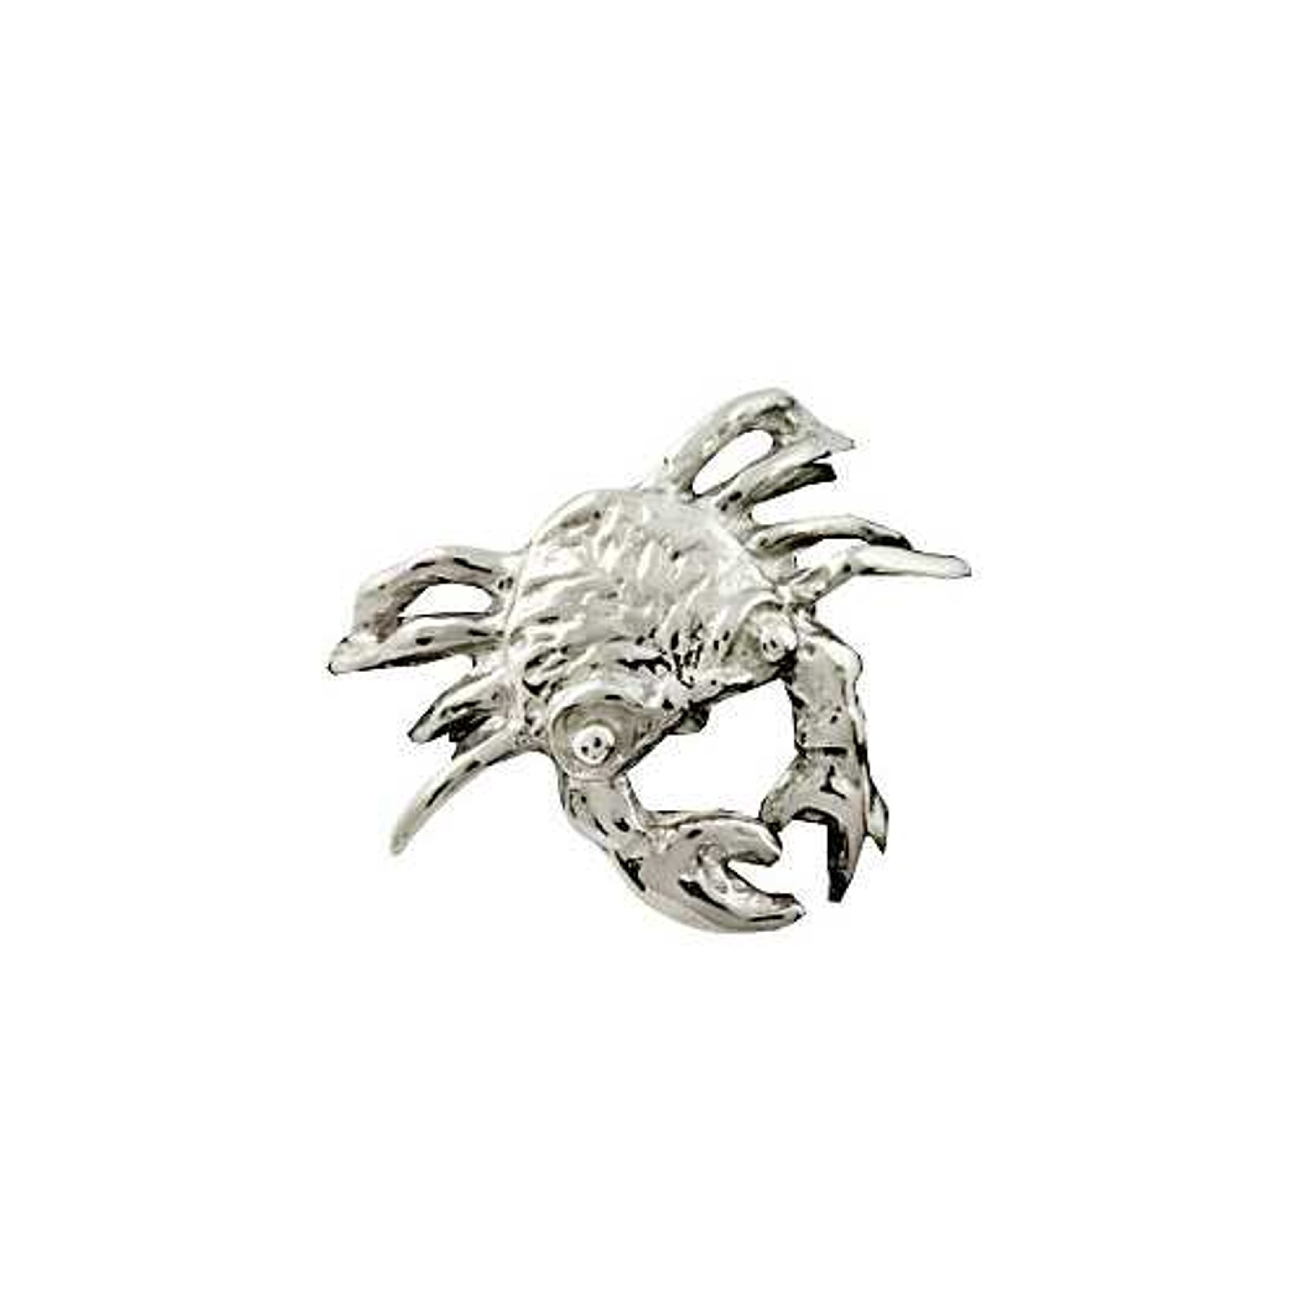 Pierceless Right Only Ocean Crab Ear Cuff